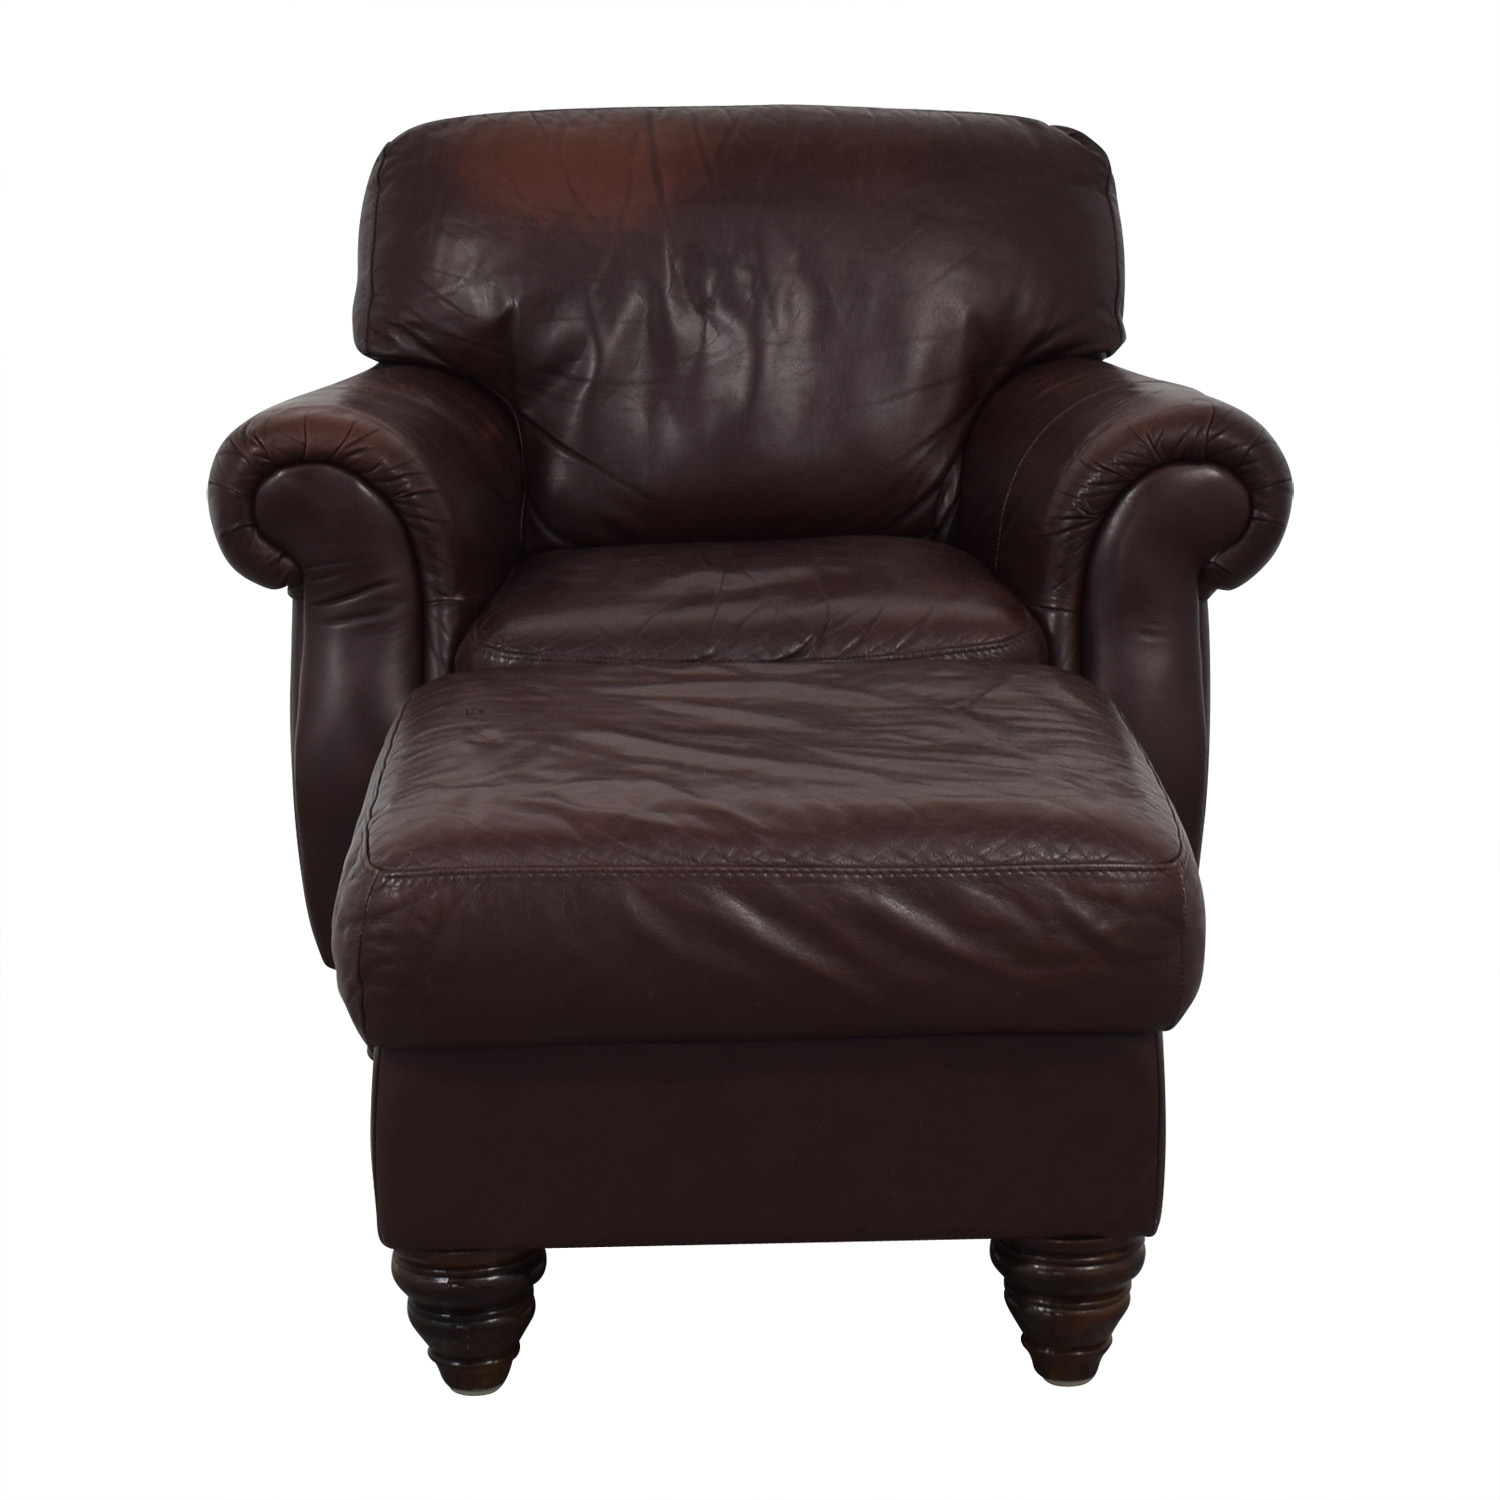 Fortunoff Fortunoff Brown Accent Chair and Ottoman used